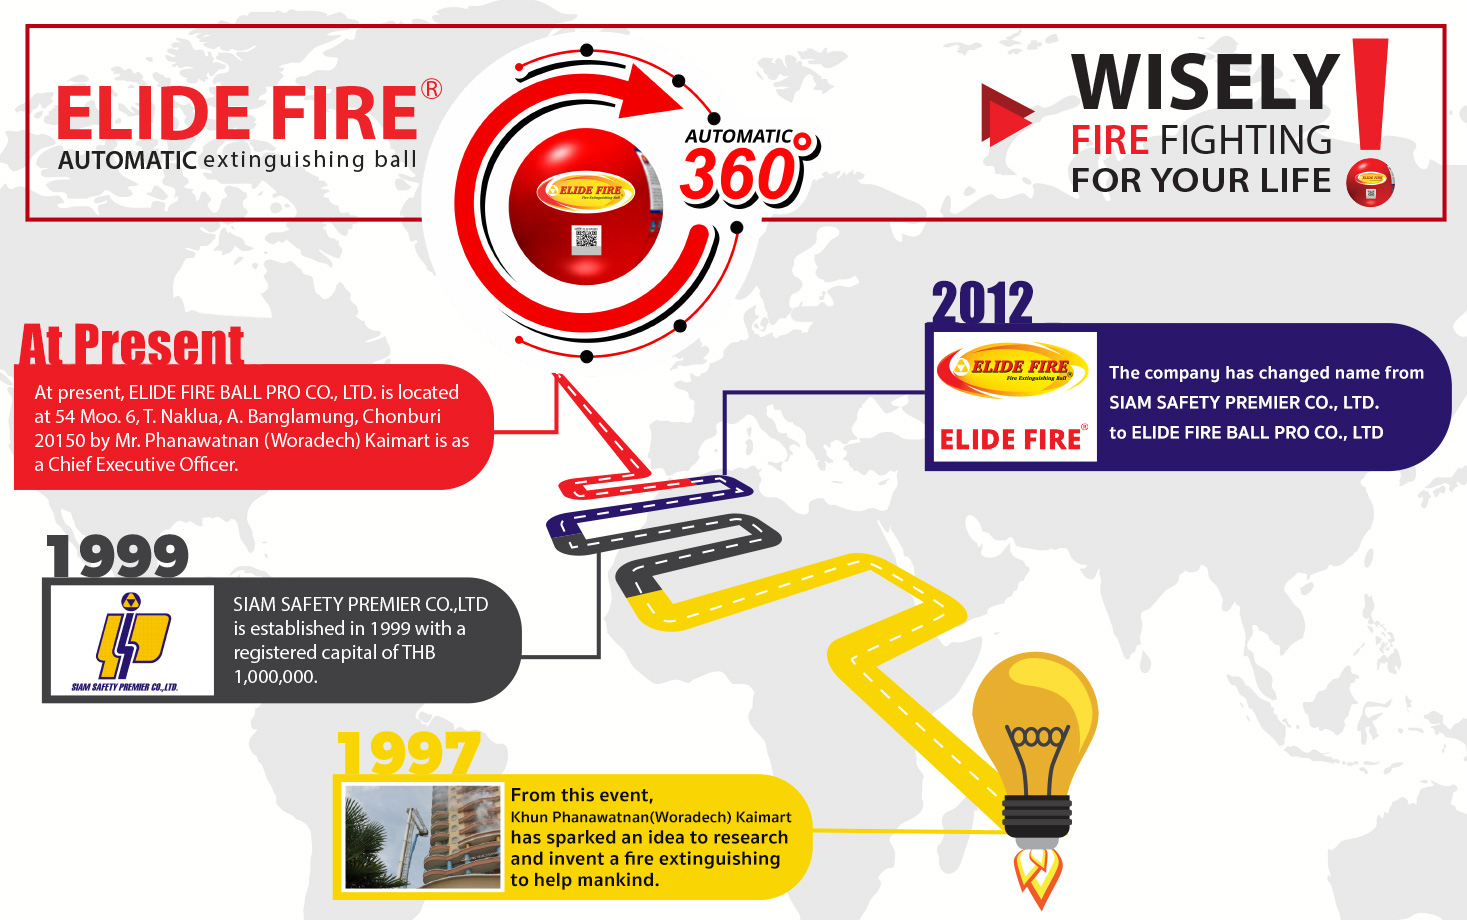 Elide Fire Ball is a new technology for fire safety protection invented by Thai, certified and awarded from worldwide.